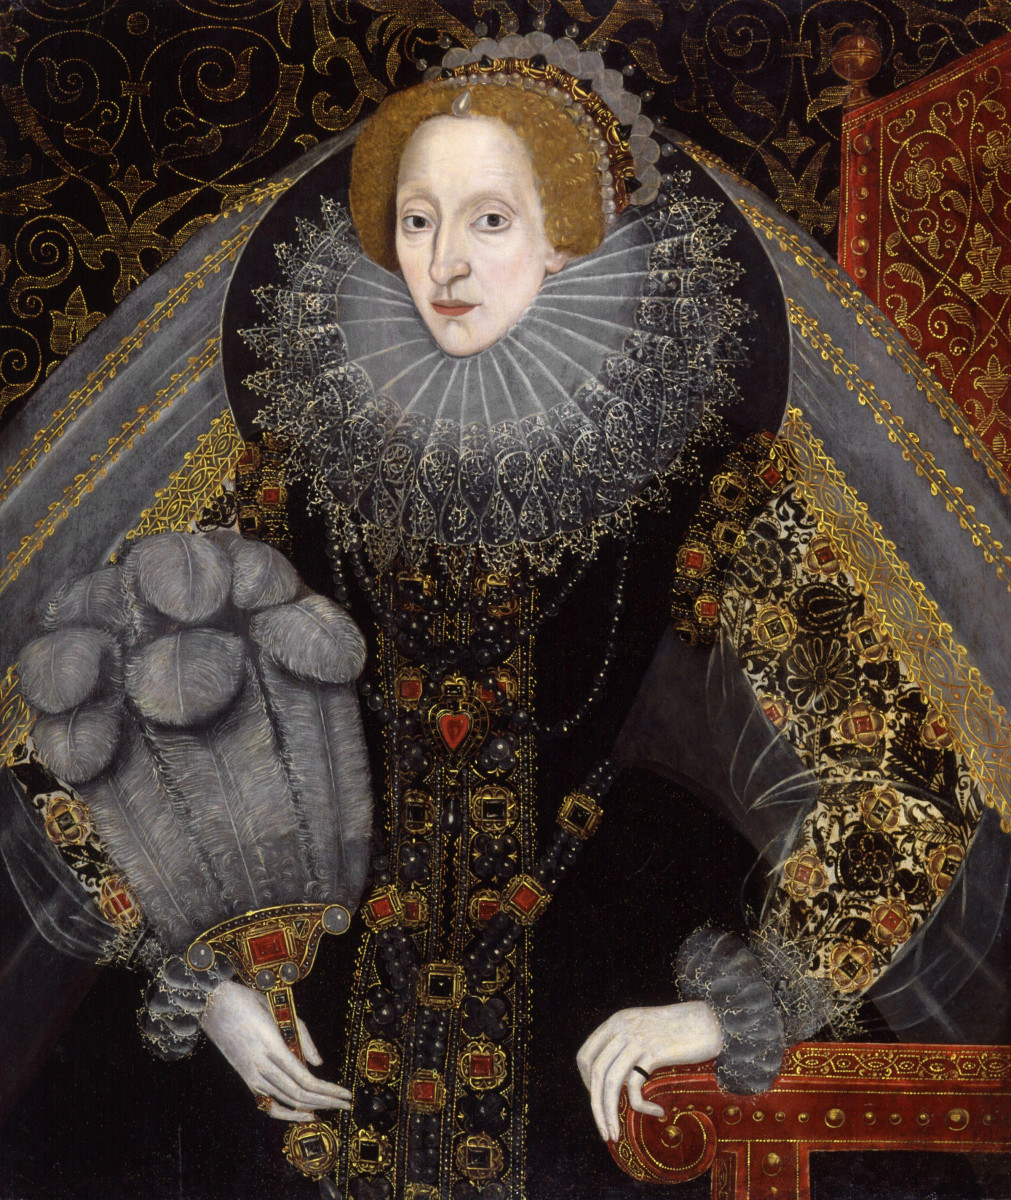 Renaissance Fashion: Women's Clothing in Elizabethan England